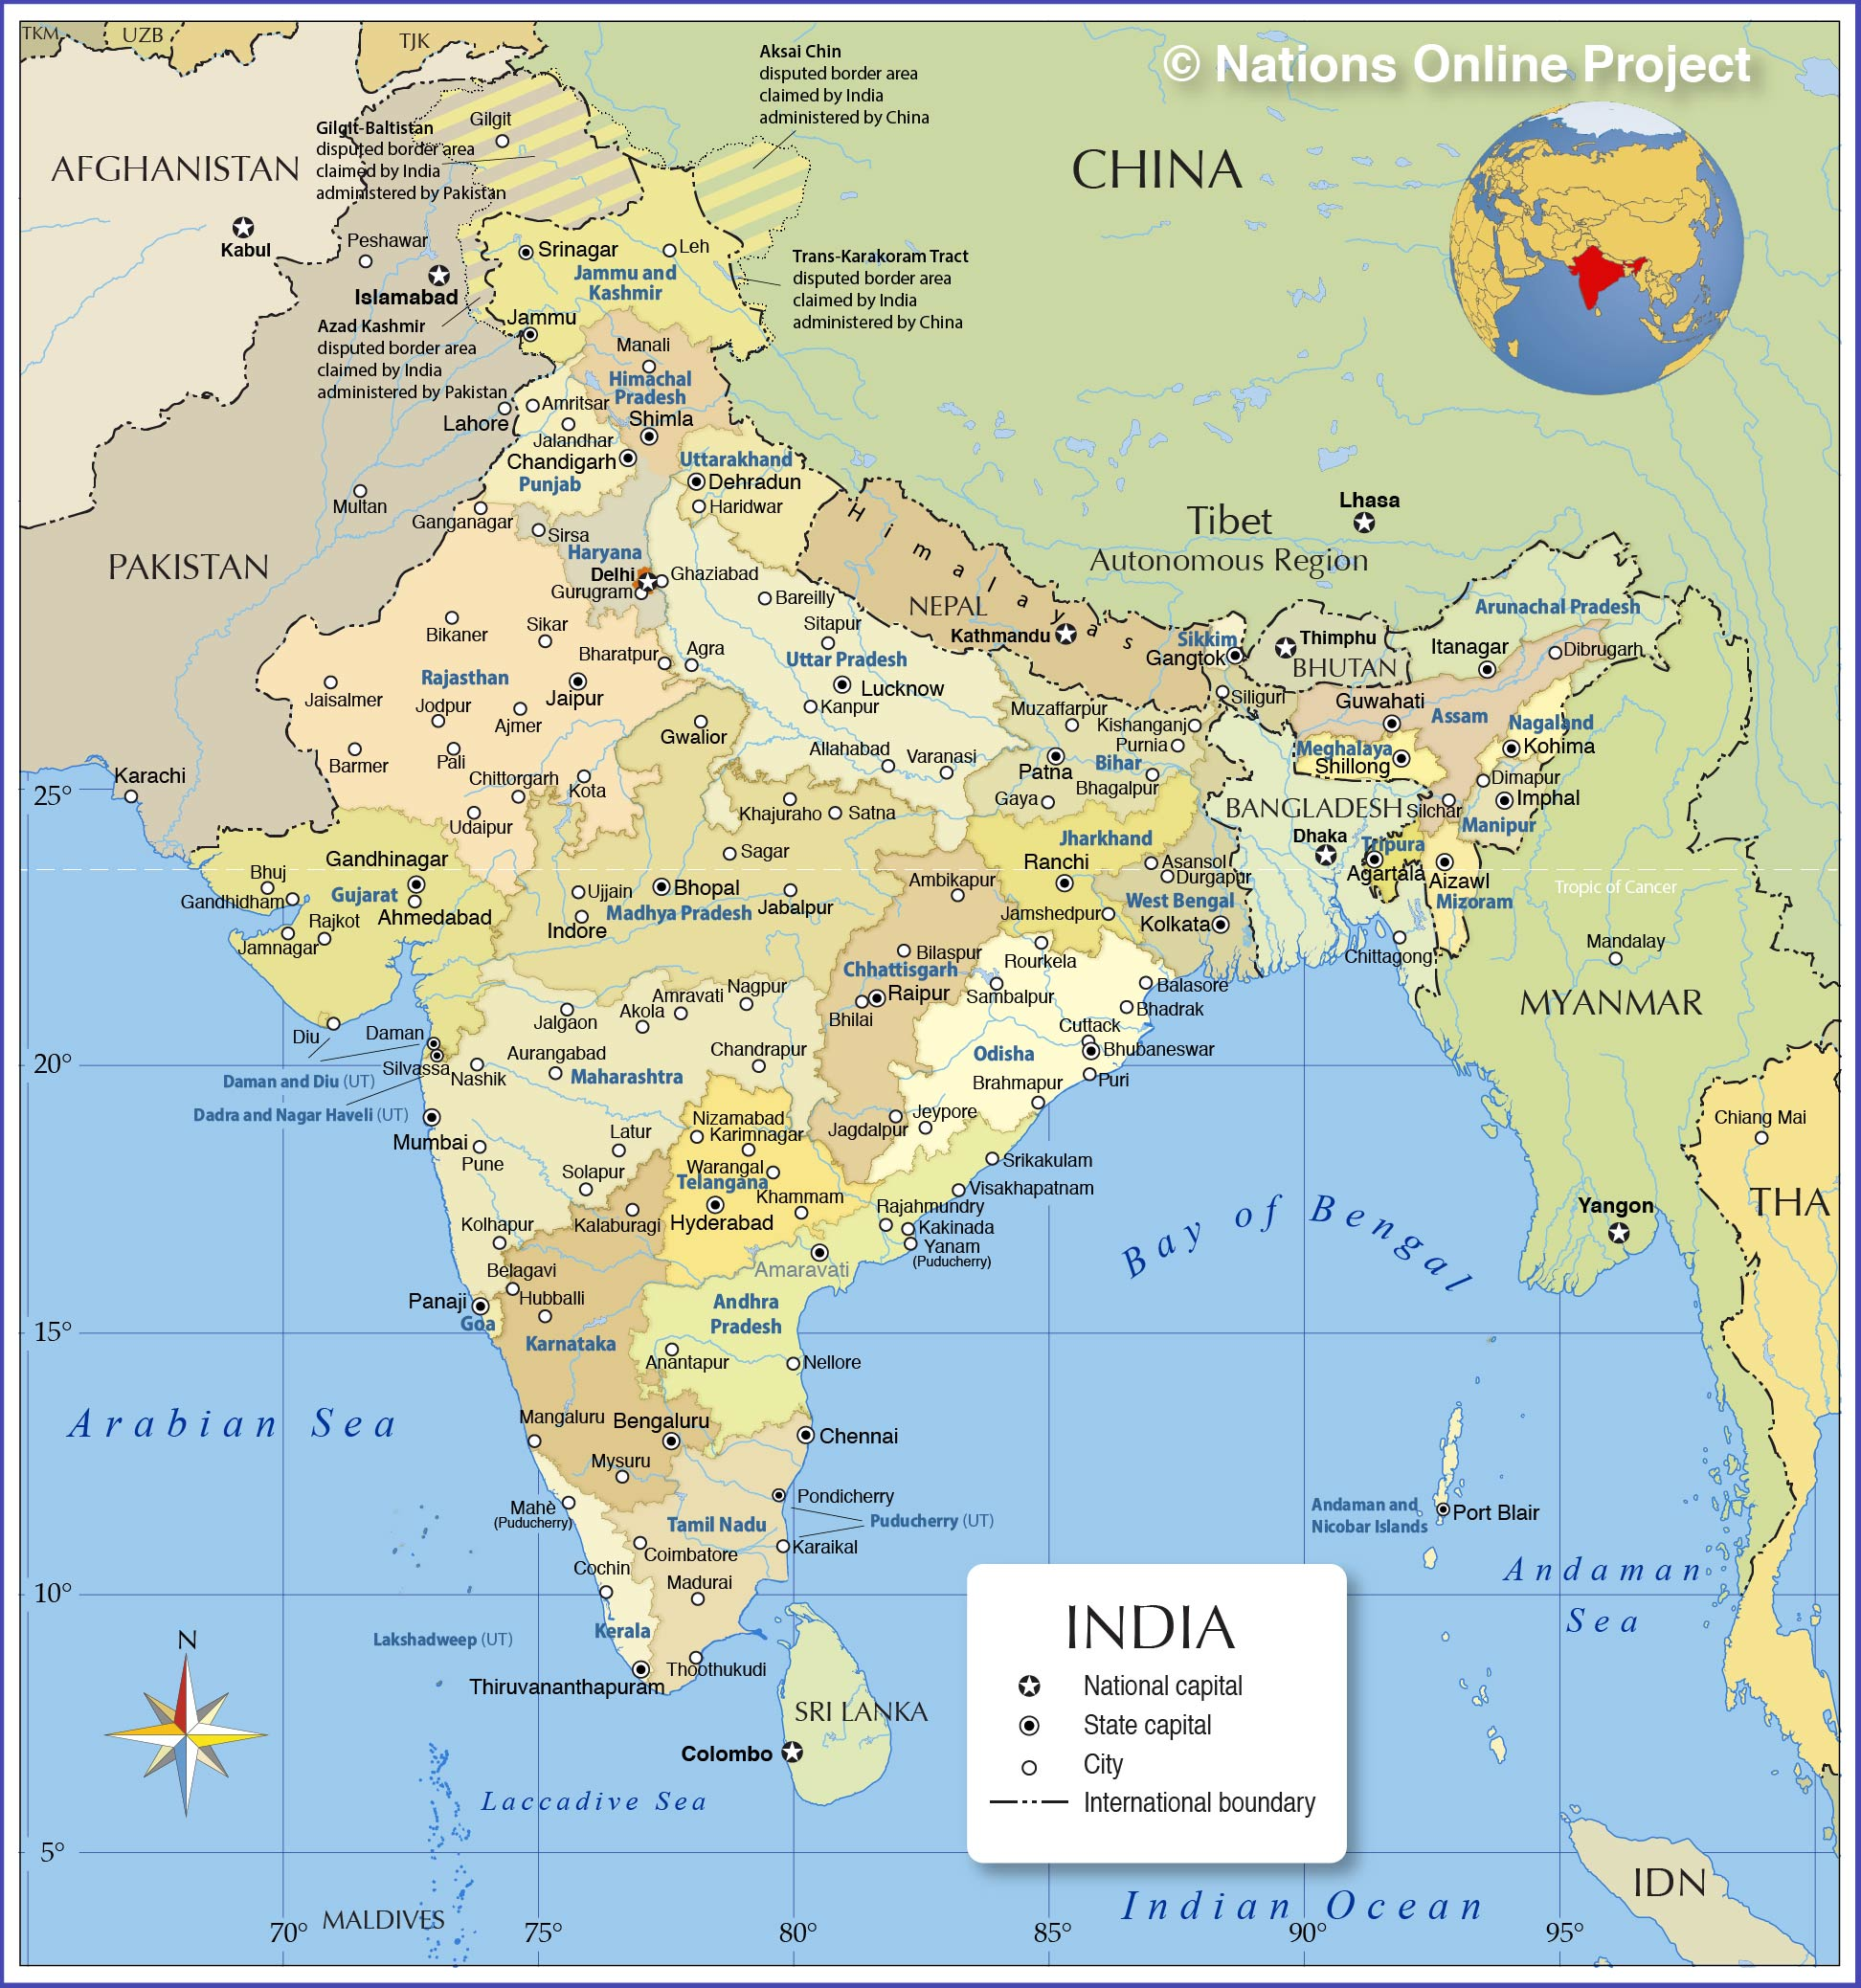 Map of india nations online project administrative map of india with states and capitals and major cities gumiabroncs Images